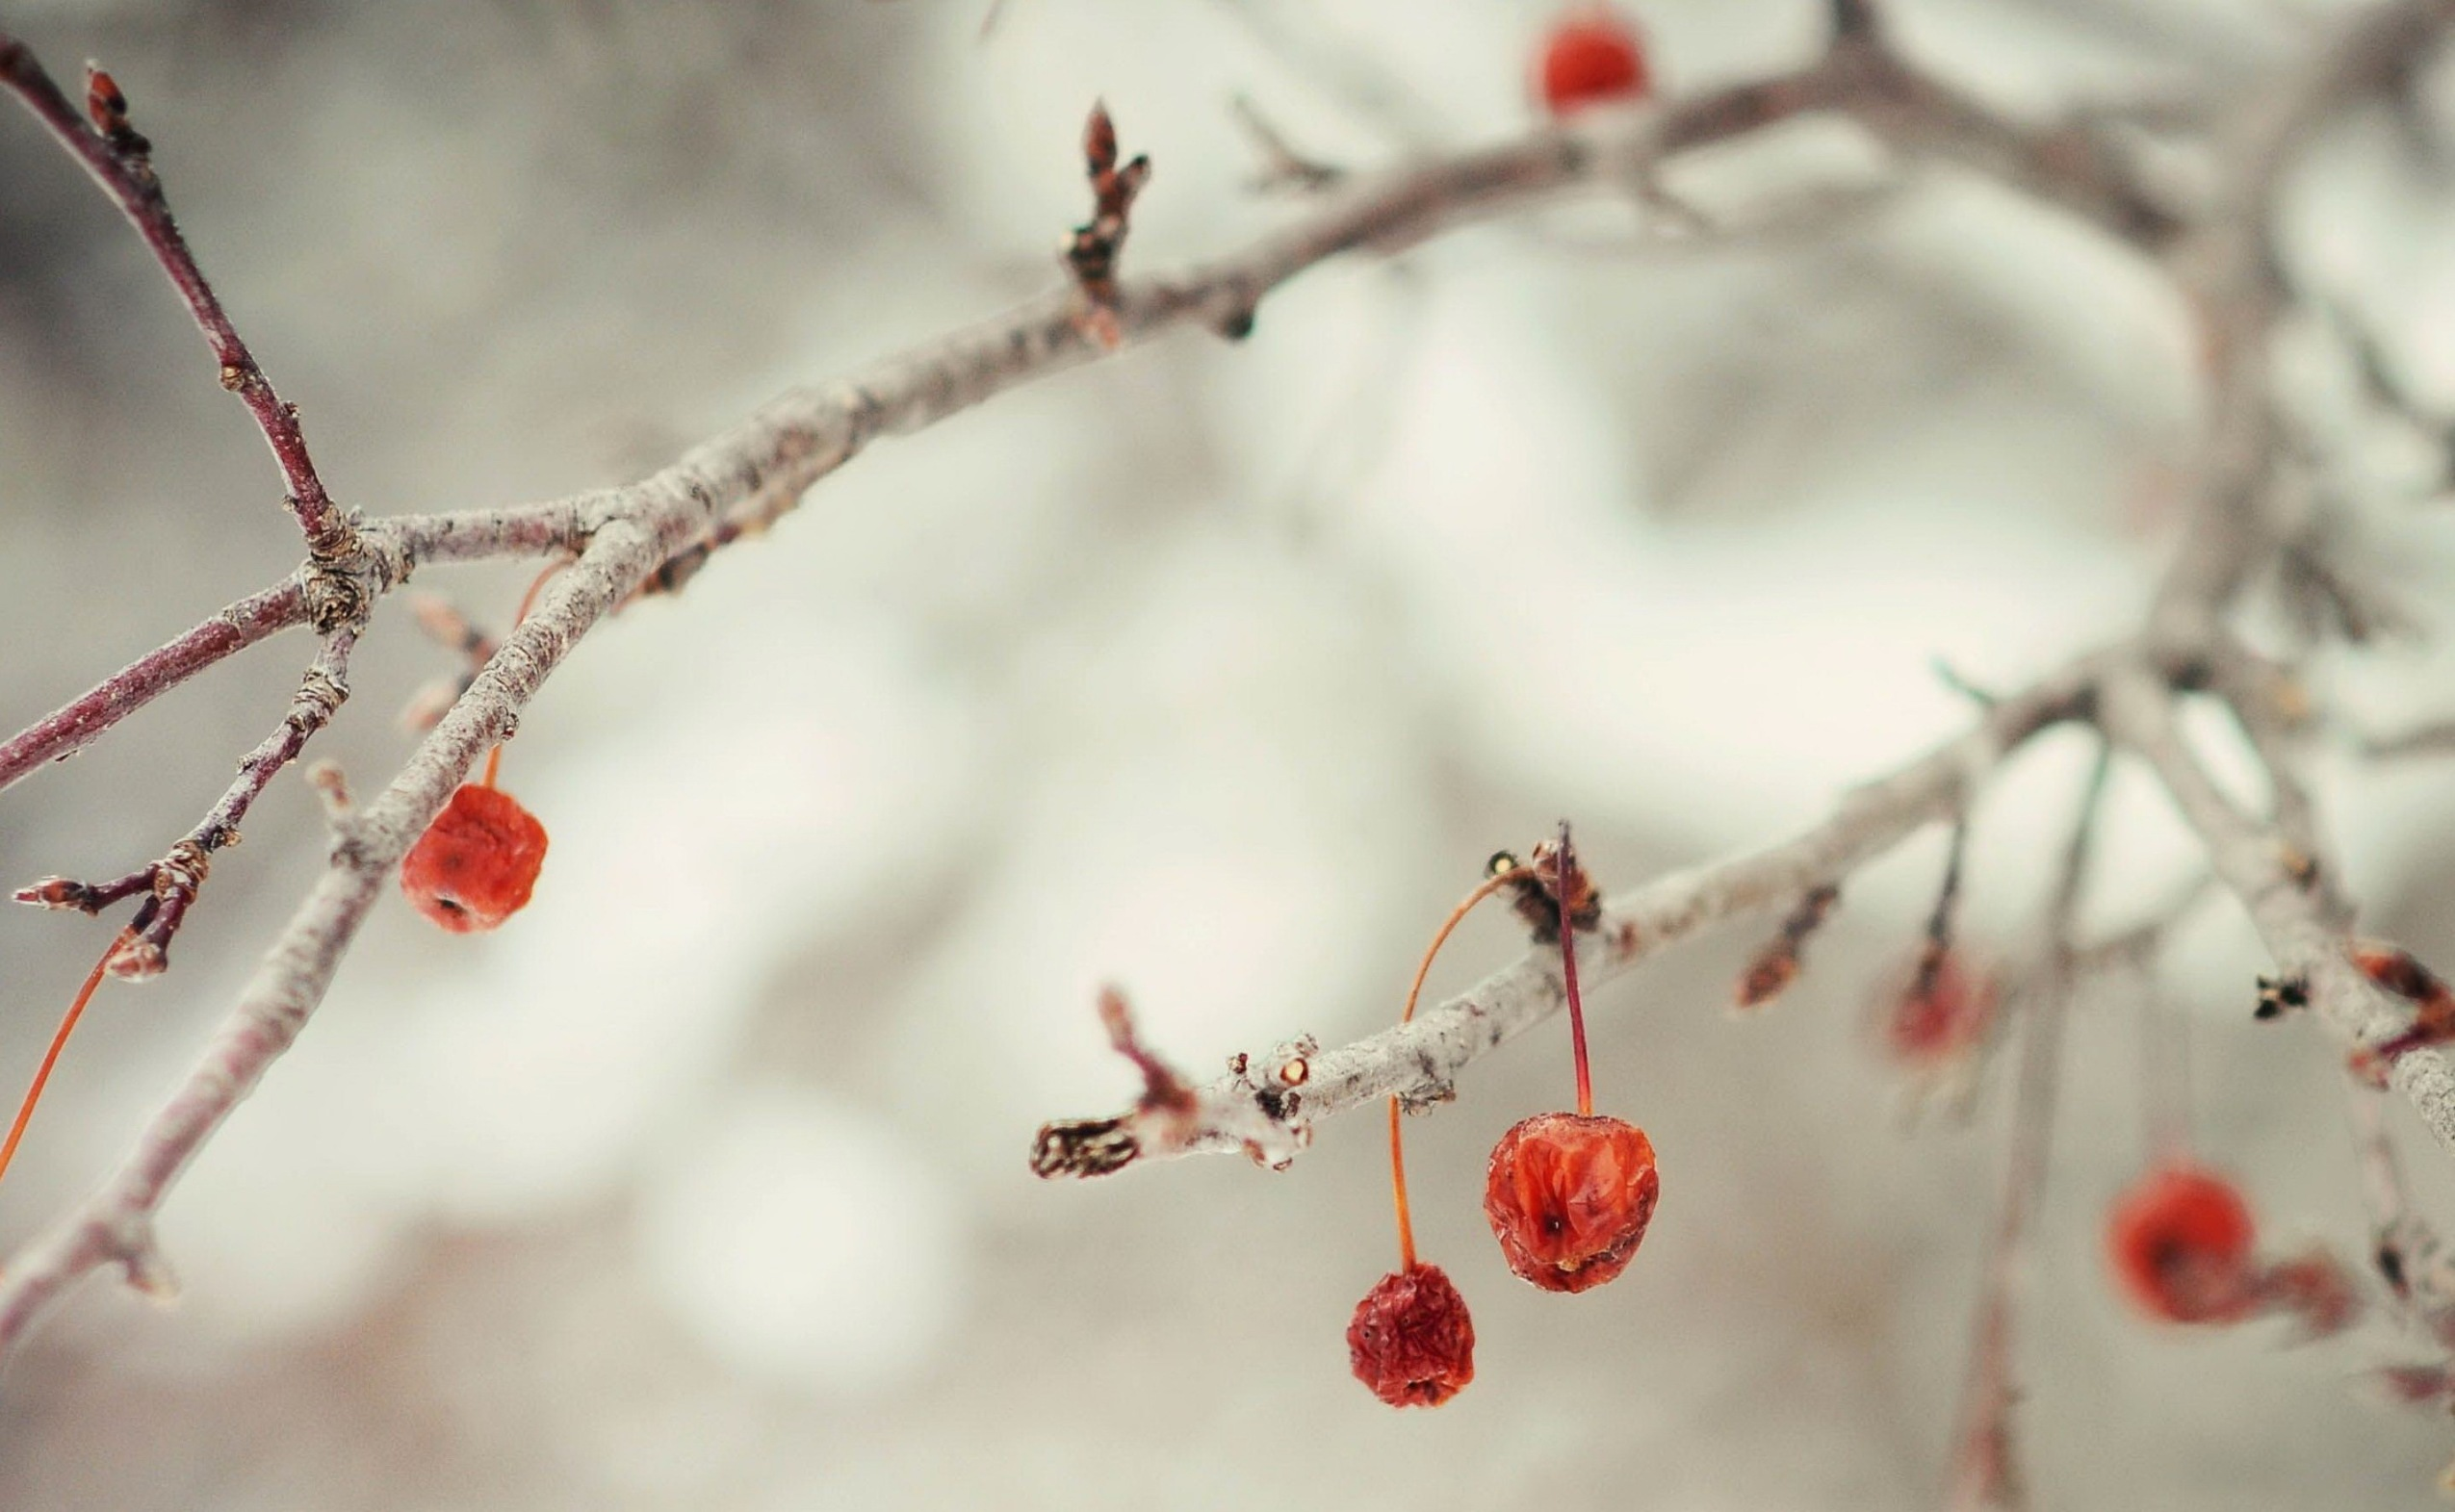 Winter Berries Branch | 2550 x 1571 | Download | Close